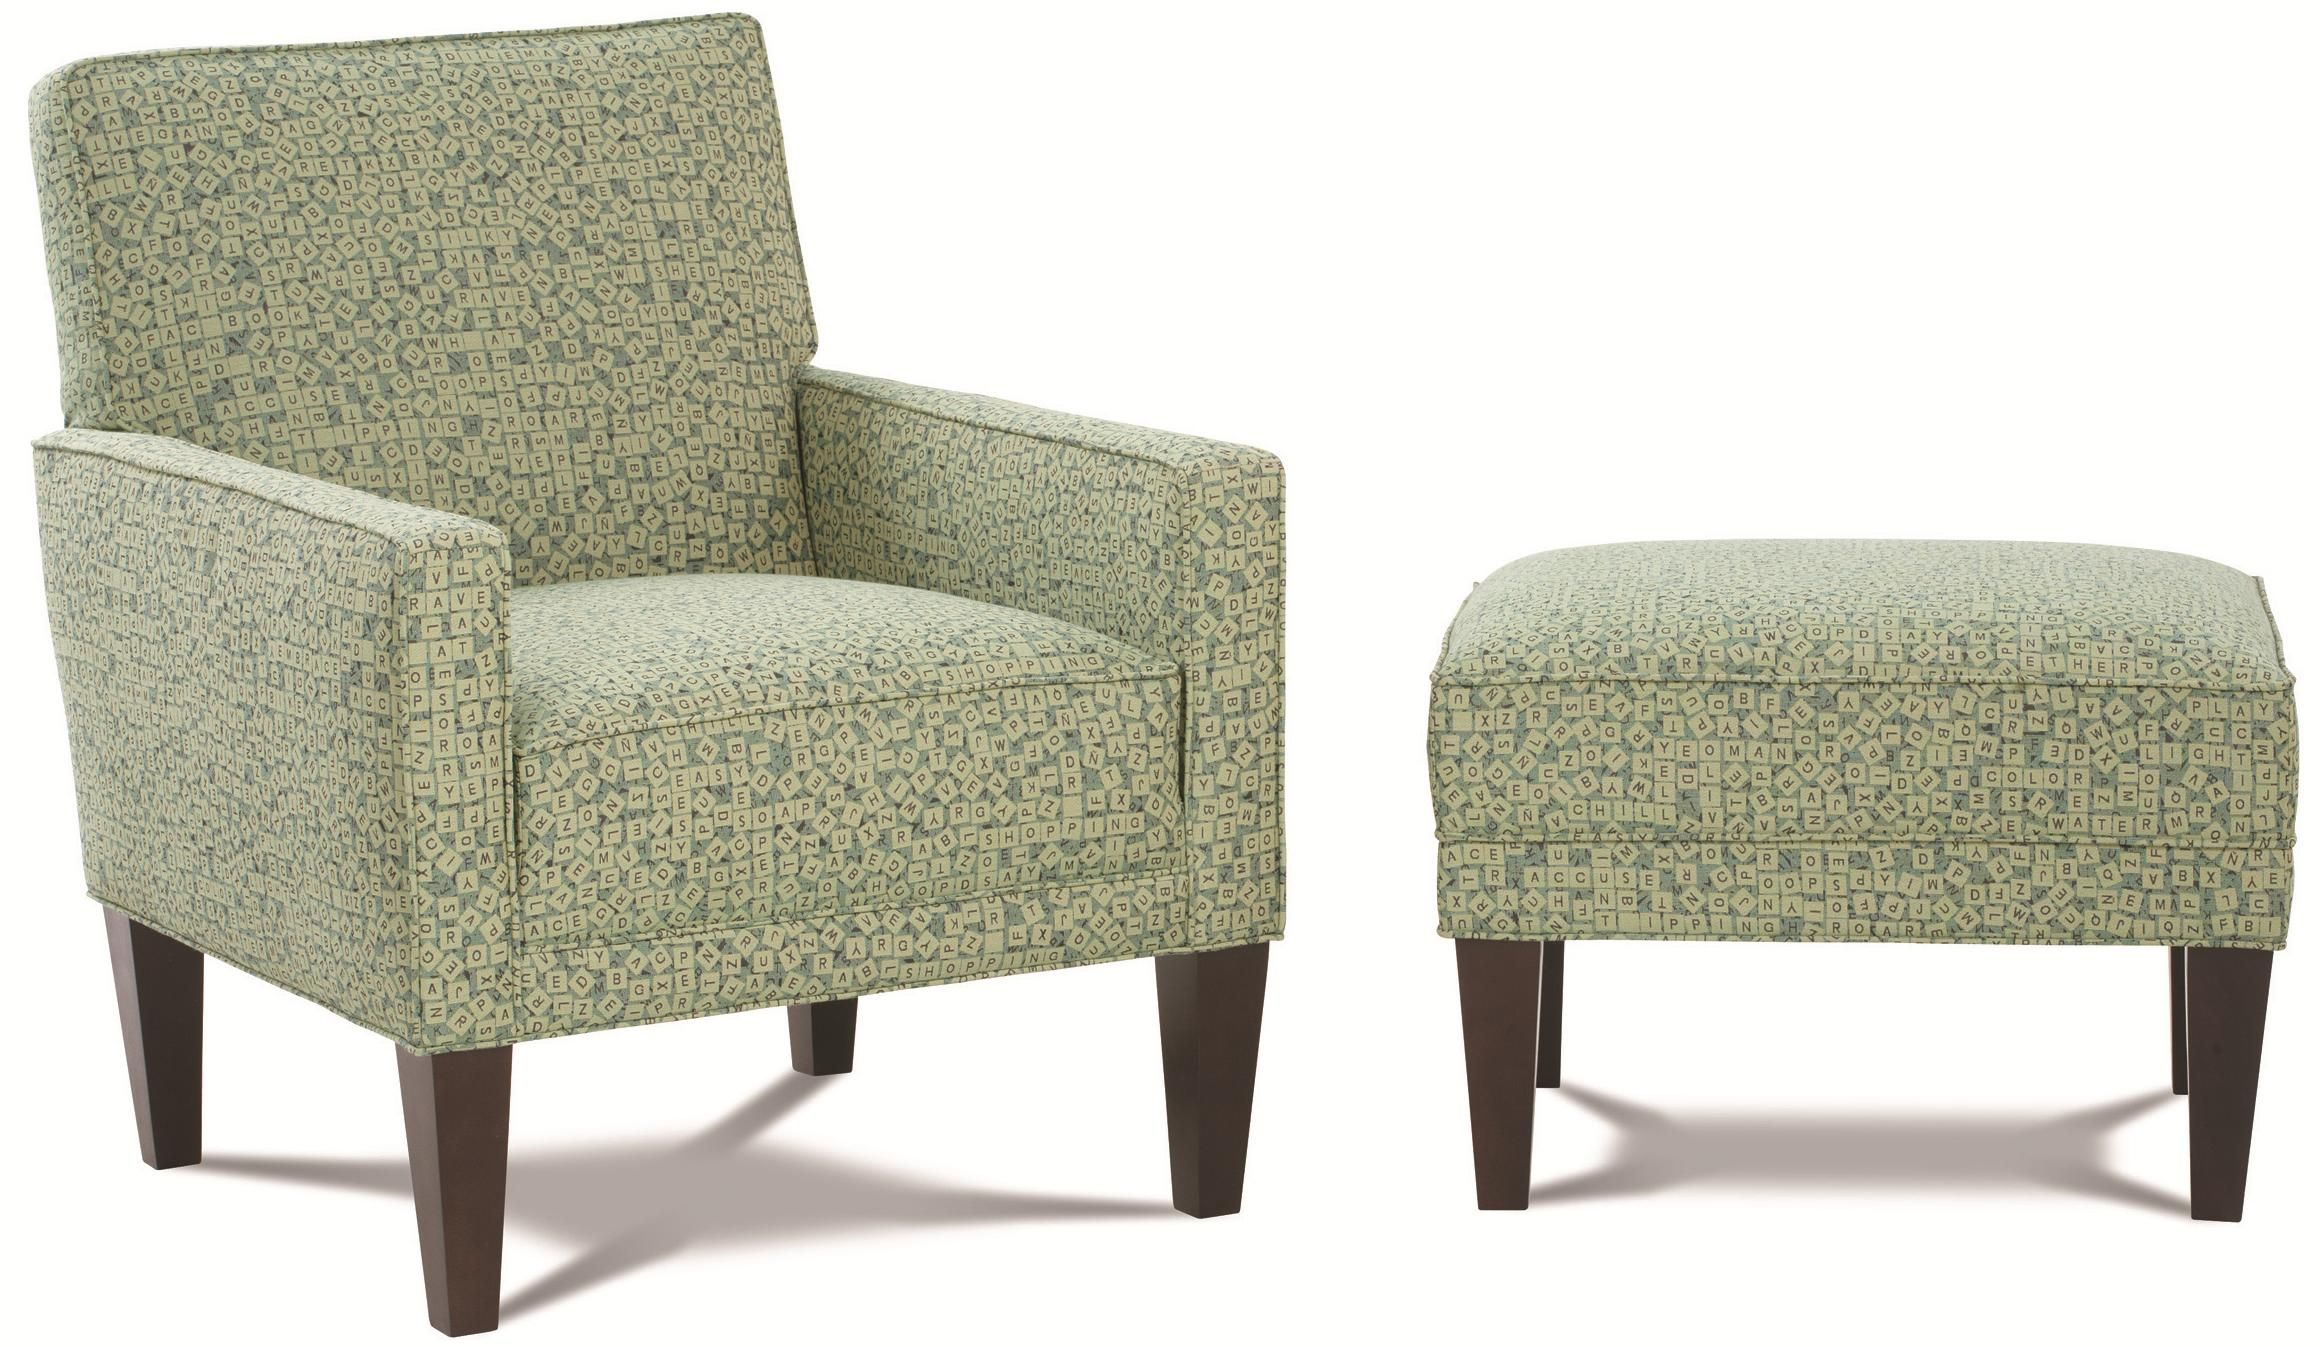 Chairs and Accents Chair and Ottoman by Rowe Chairs